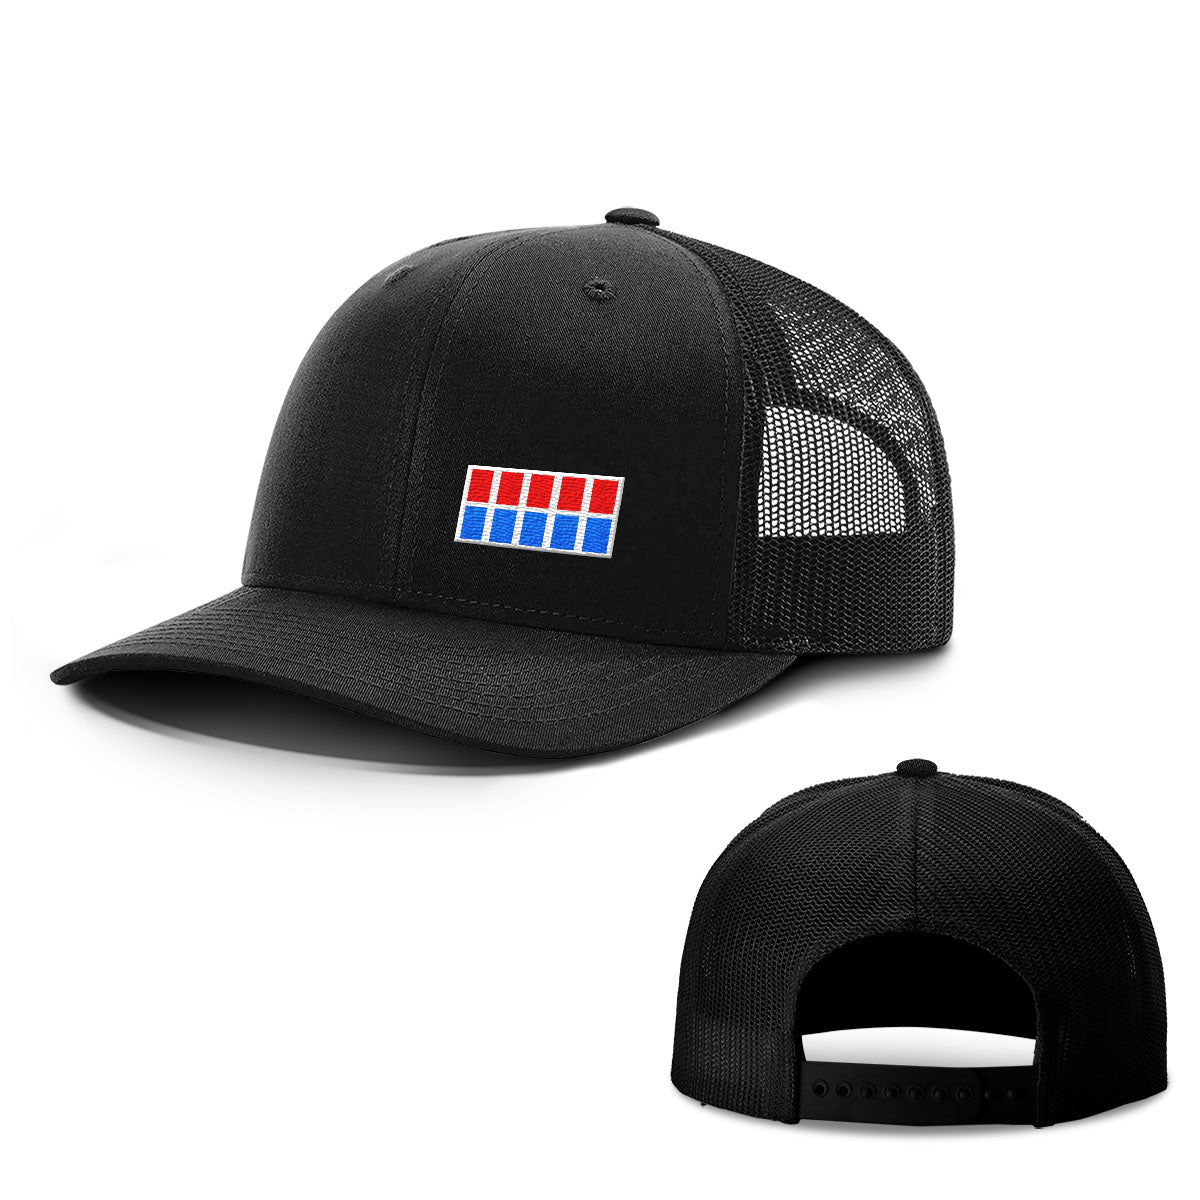 Imperial Officer Hats